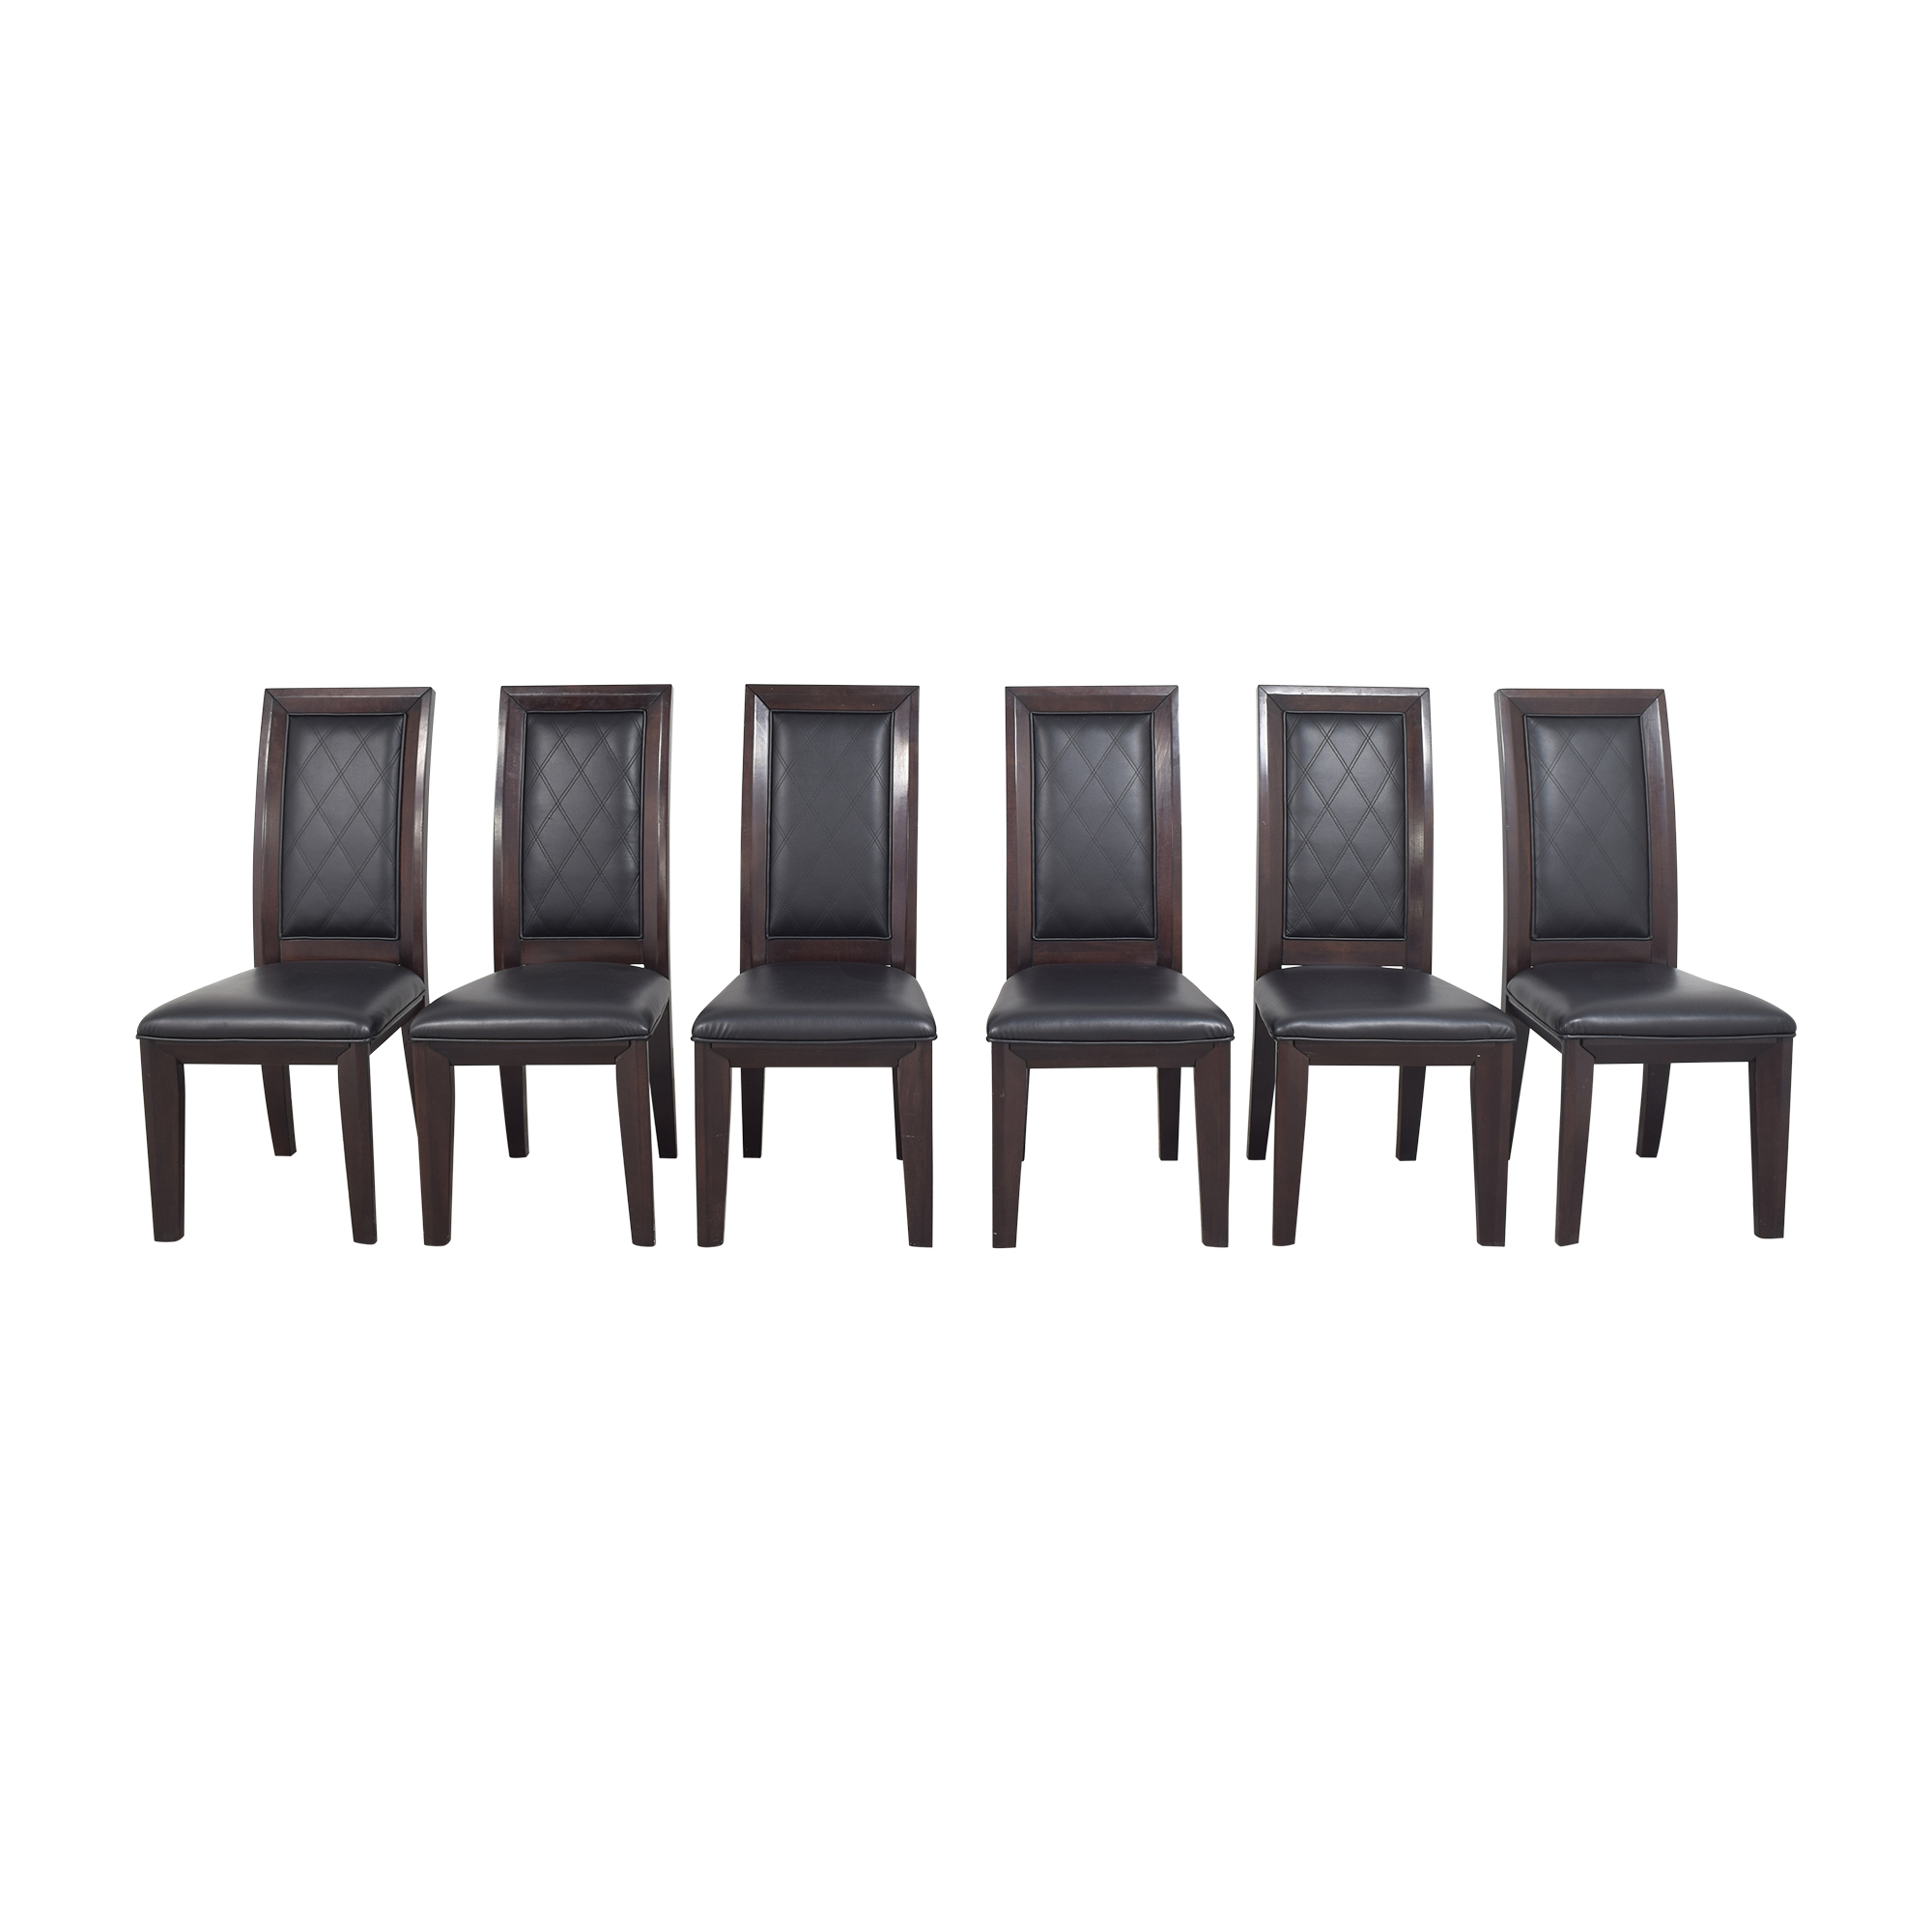 Raymour & Flanigan Raymour & Flanigan Callister Dining Chairs for sale